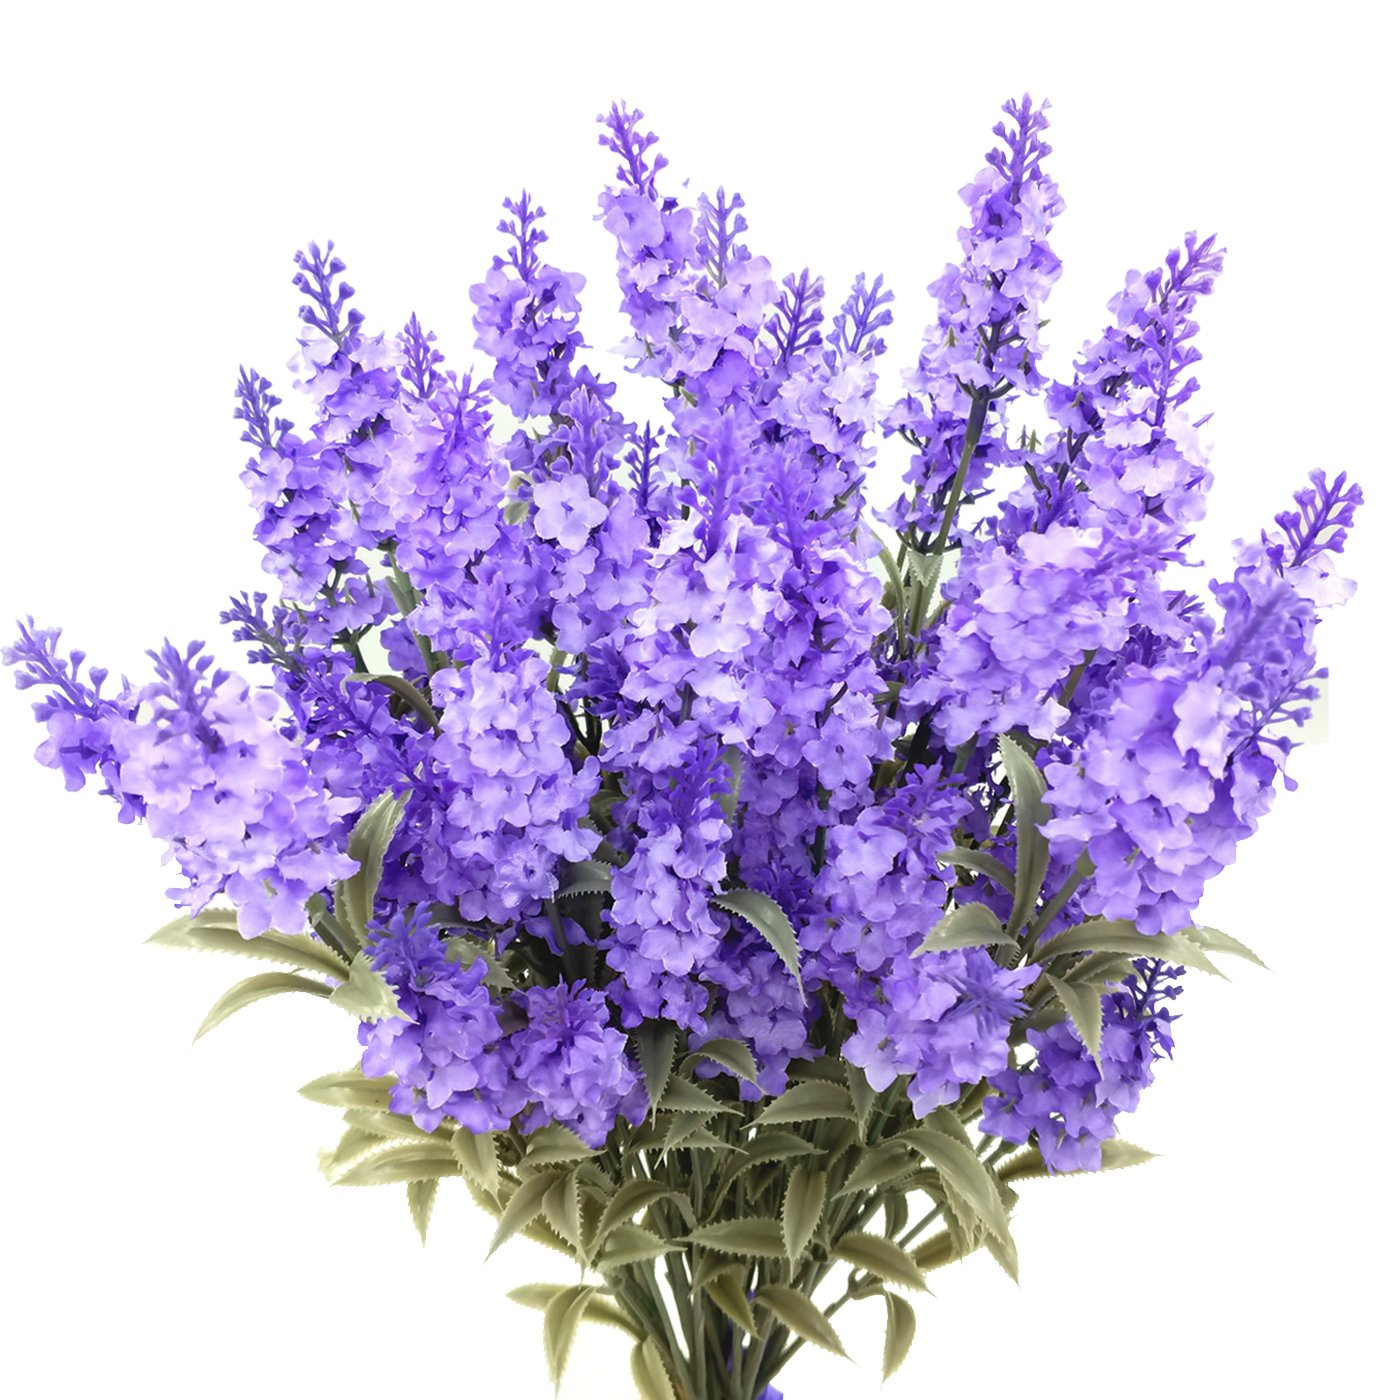 Guagb-Artificial-Lavender-Silk-Flowers-Plastic-Fake-Plant-Make-a-Bountiful-Flower-Arrangement-Decor-Your-Outdoor-Indoor-House-6-Pieces